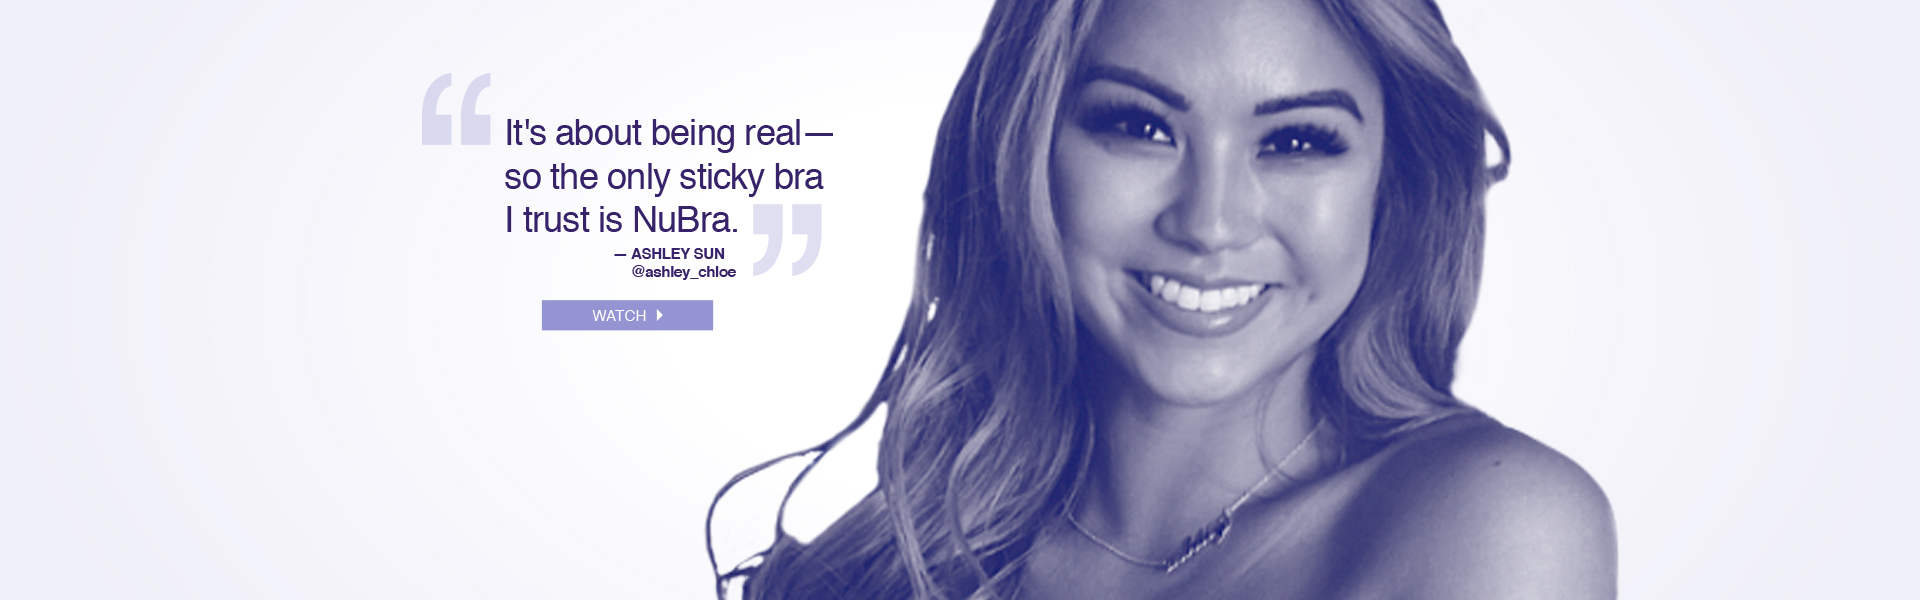 It's about being real - so the only sticky bra I trust is NuBra. --Ashley Sun